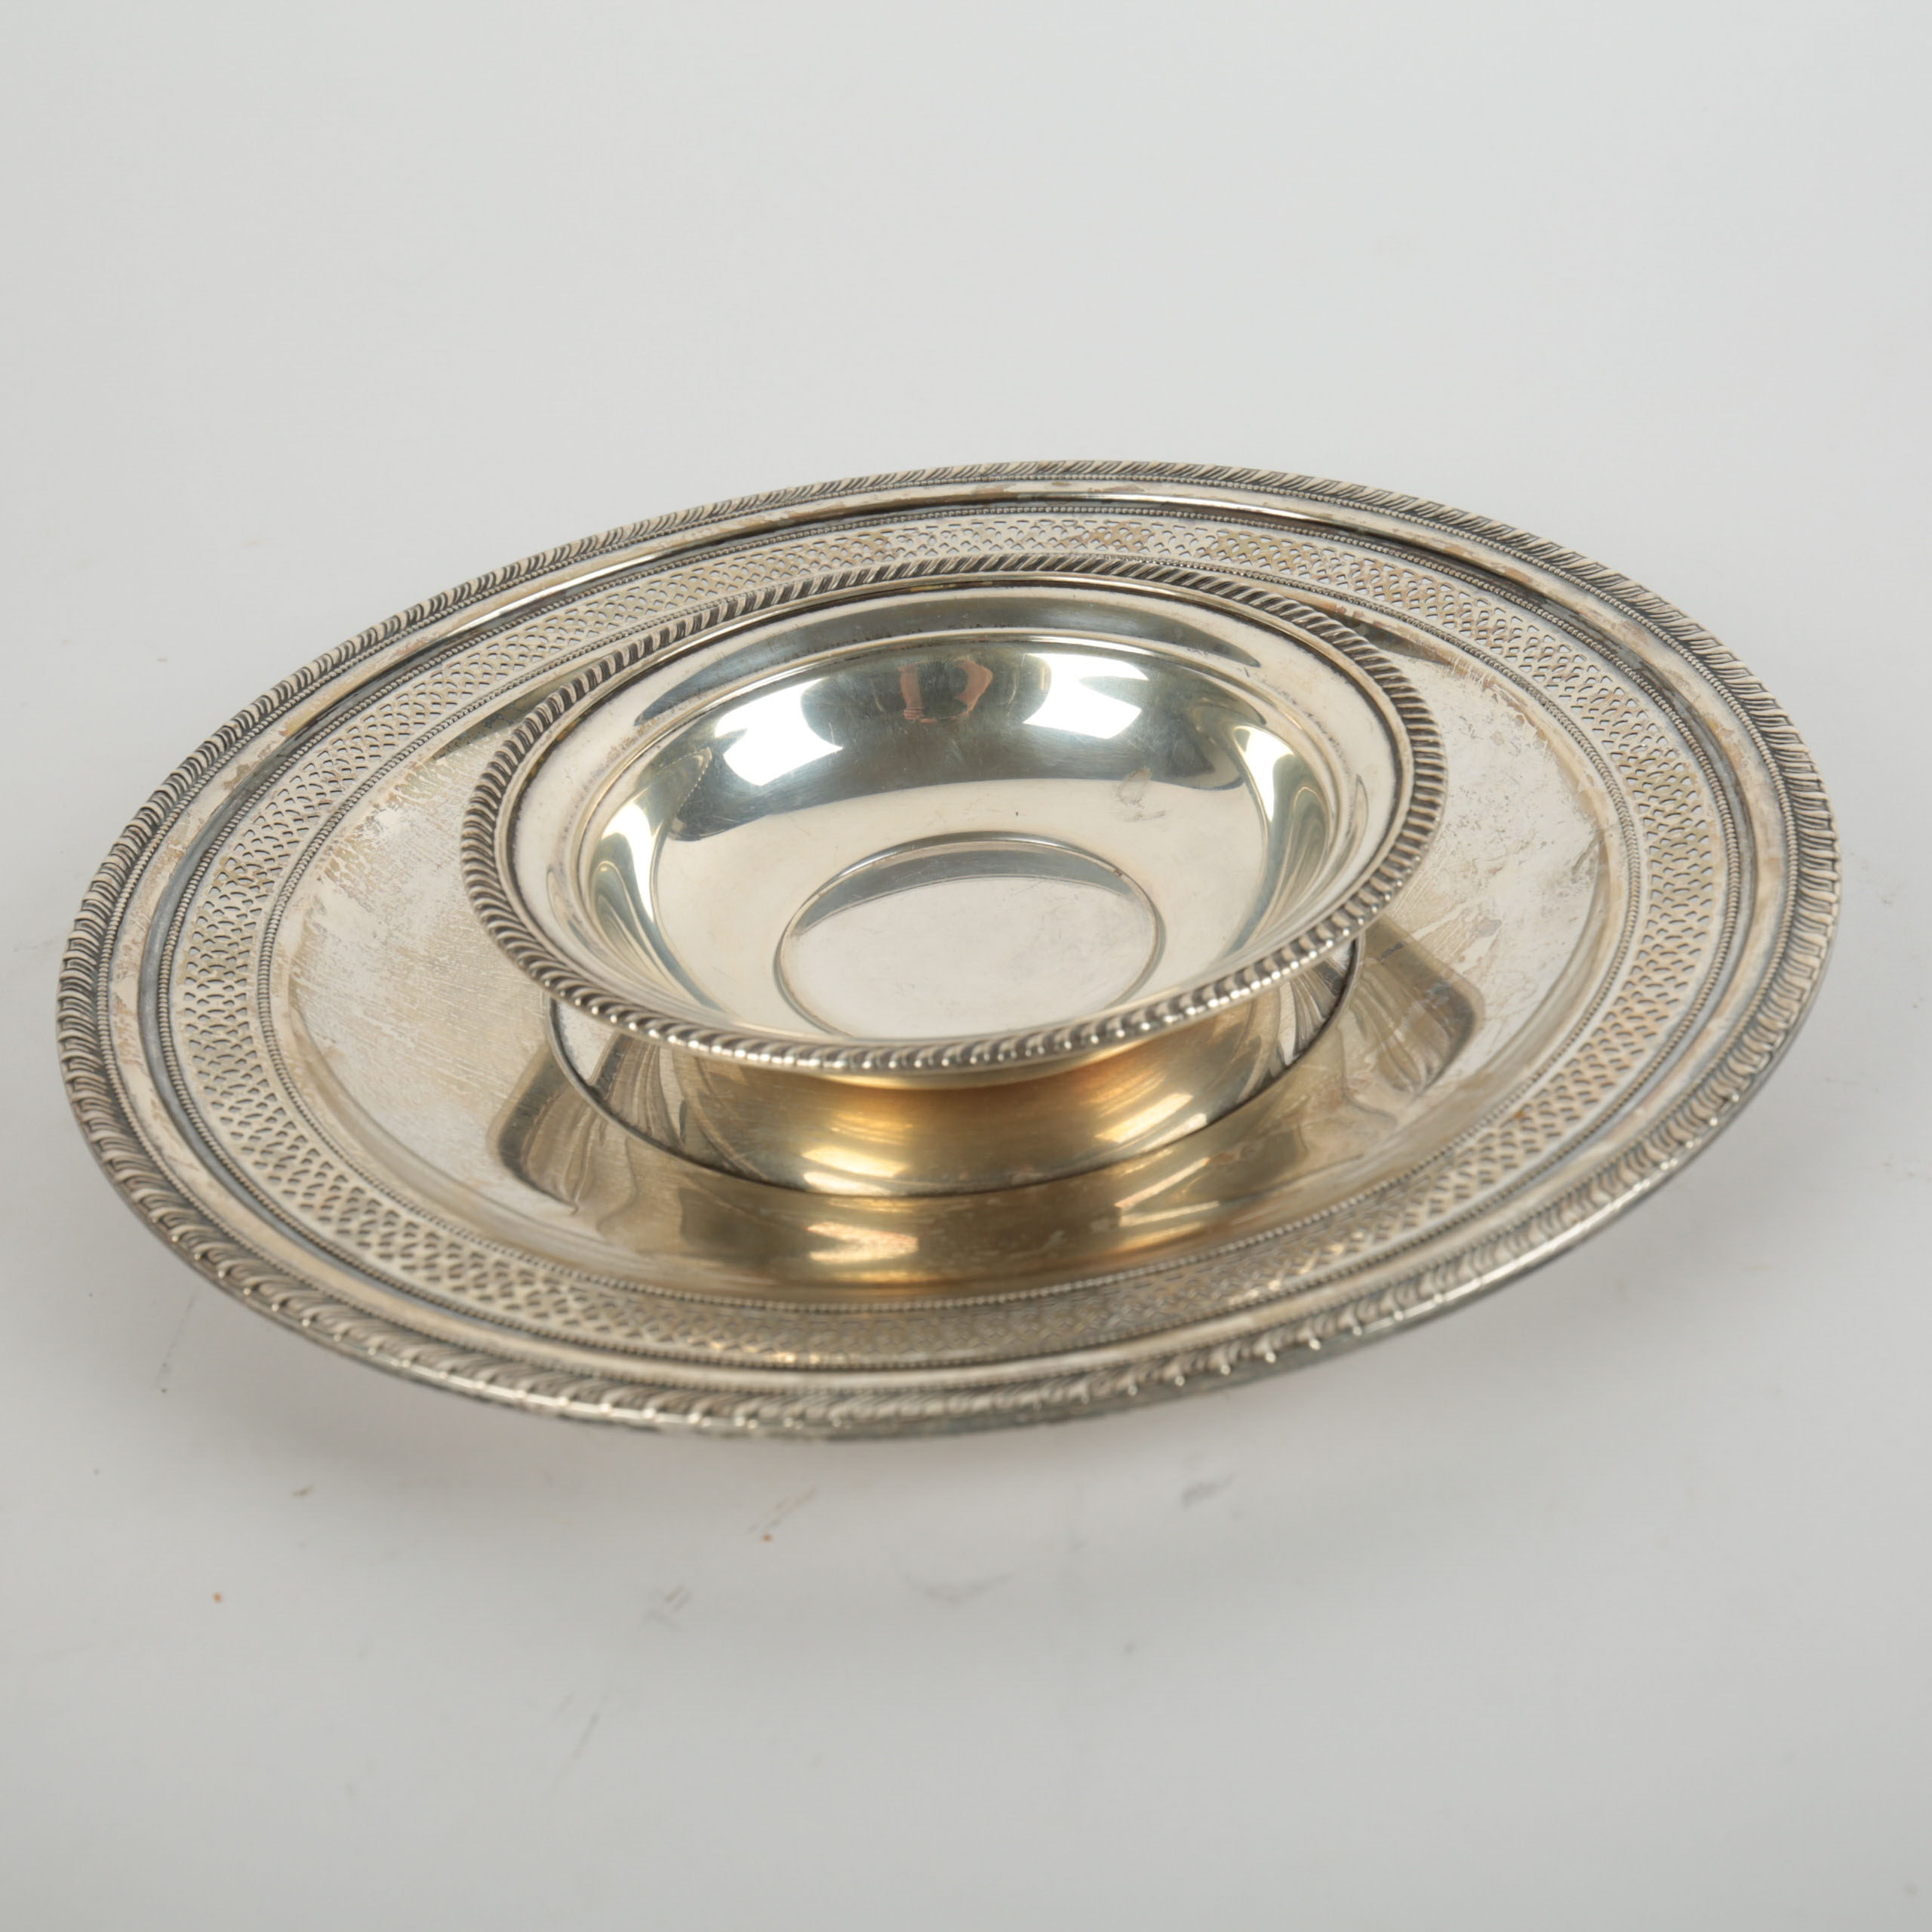 Sterling Silver Serveware Featuring a Gorham Bowl and Redlich & Company Platter